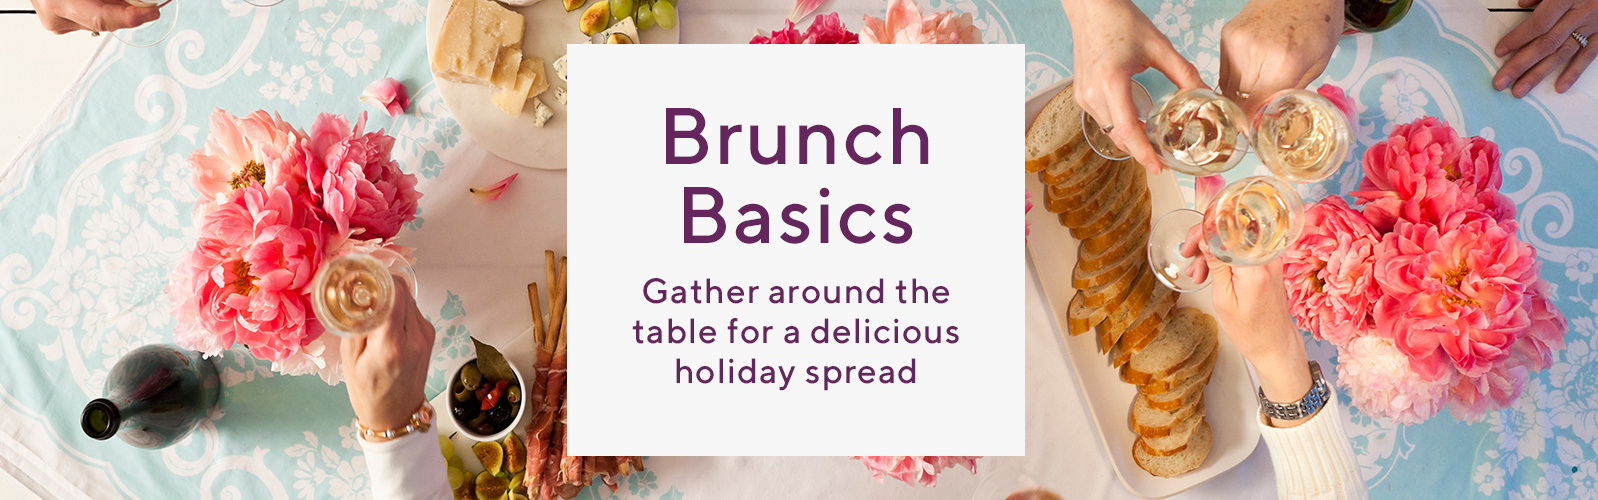 Brunch Basics.  Gather around the table for a delicious holiday spread.